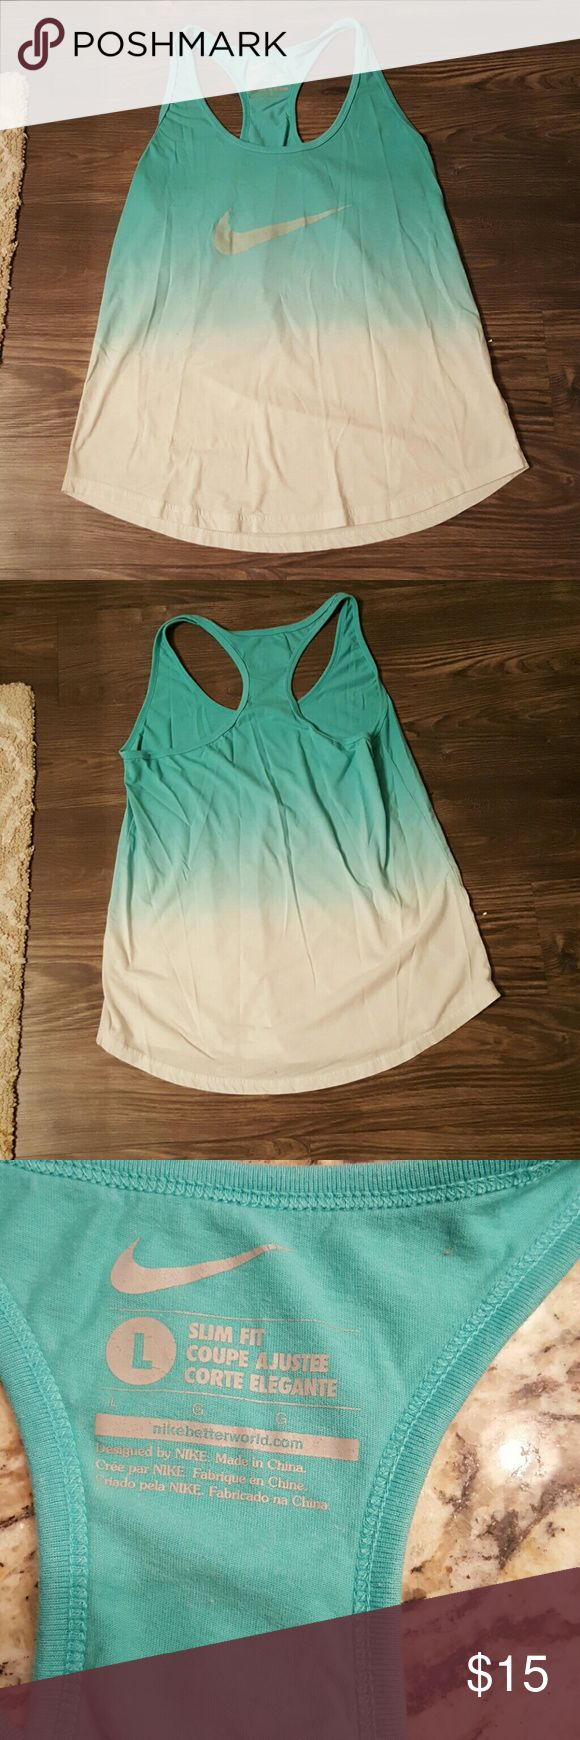 Nike slim fit racerback tank Super cute Nike tank for sale! Could be worn as cover up, looks really cute with a bandeau under it as well! Size large slim fit. Really comfy and in excellent condition--no flaws! Nike Tops